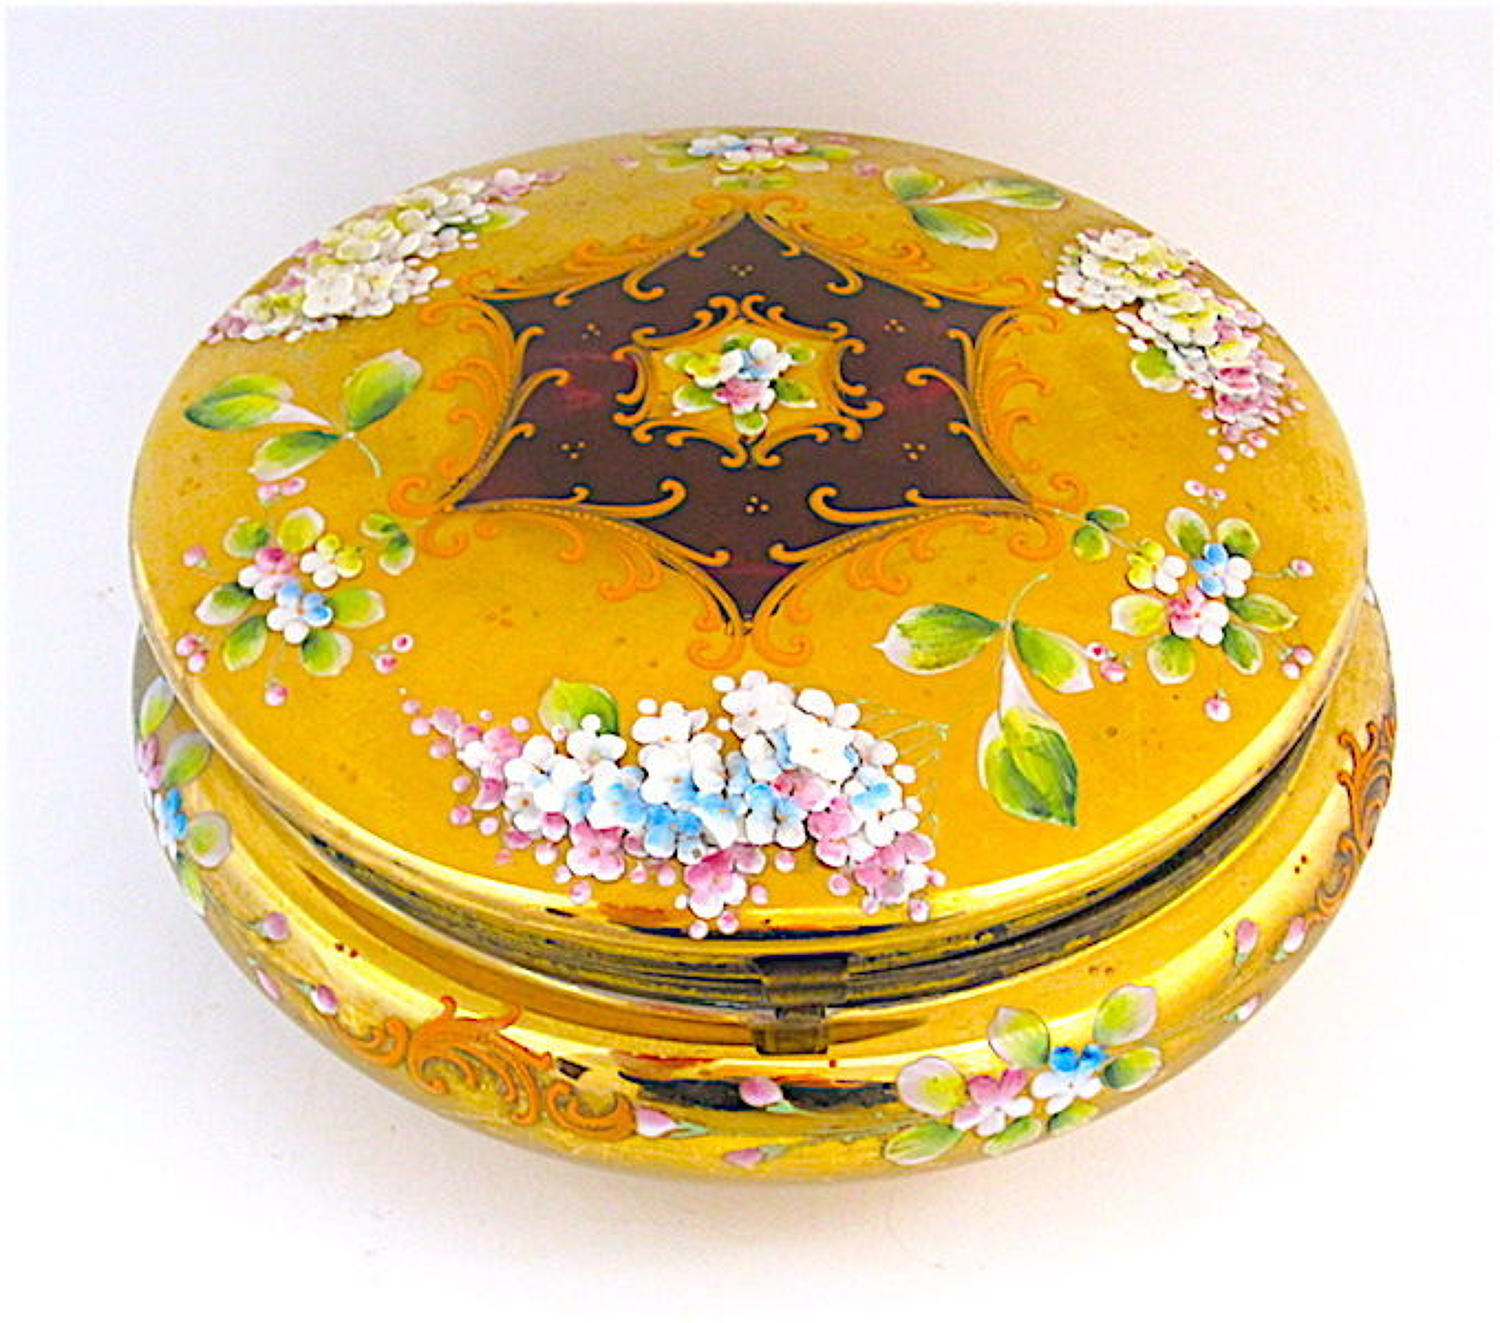 Large Antique Round MOSER Casket with Applied Glass Flowers